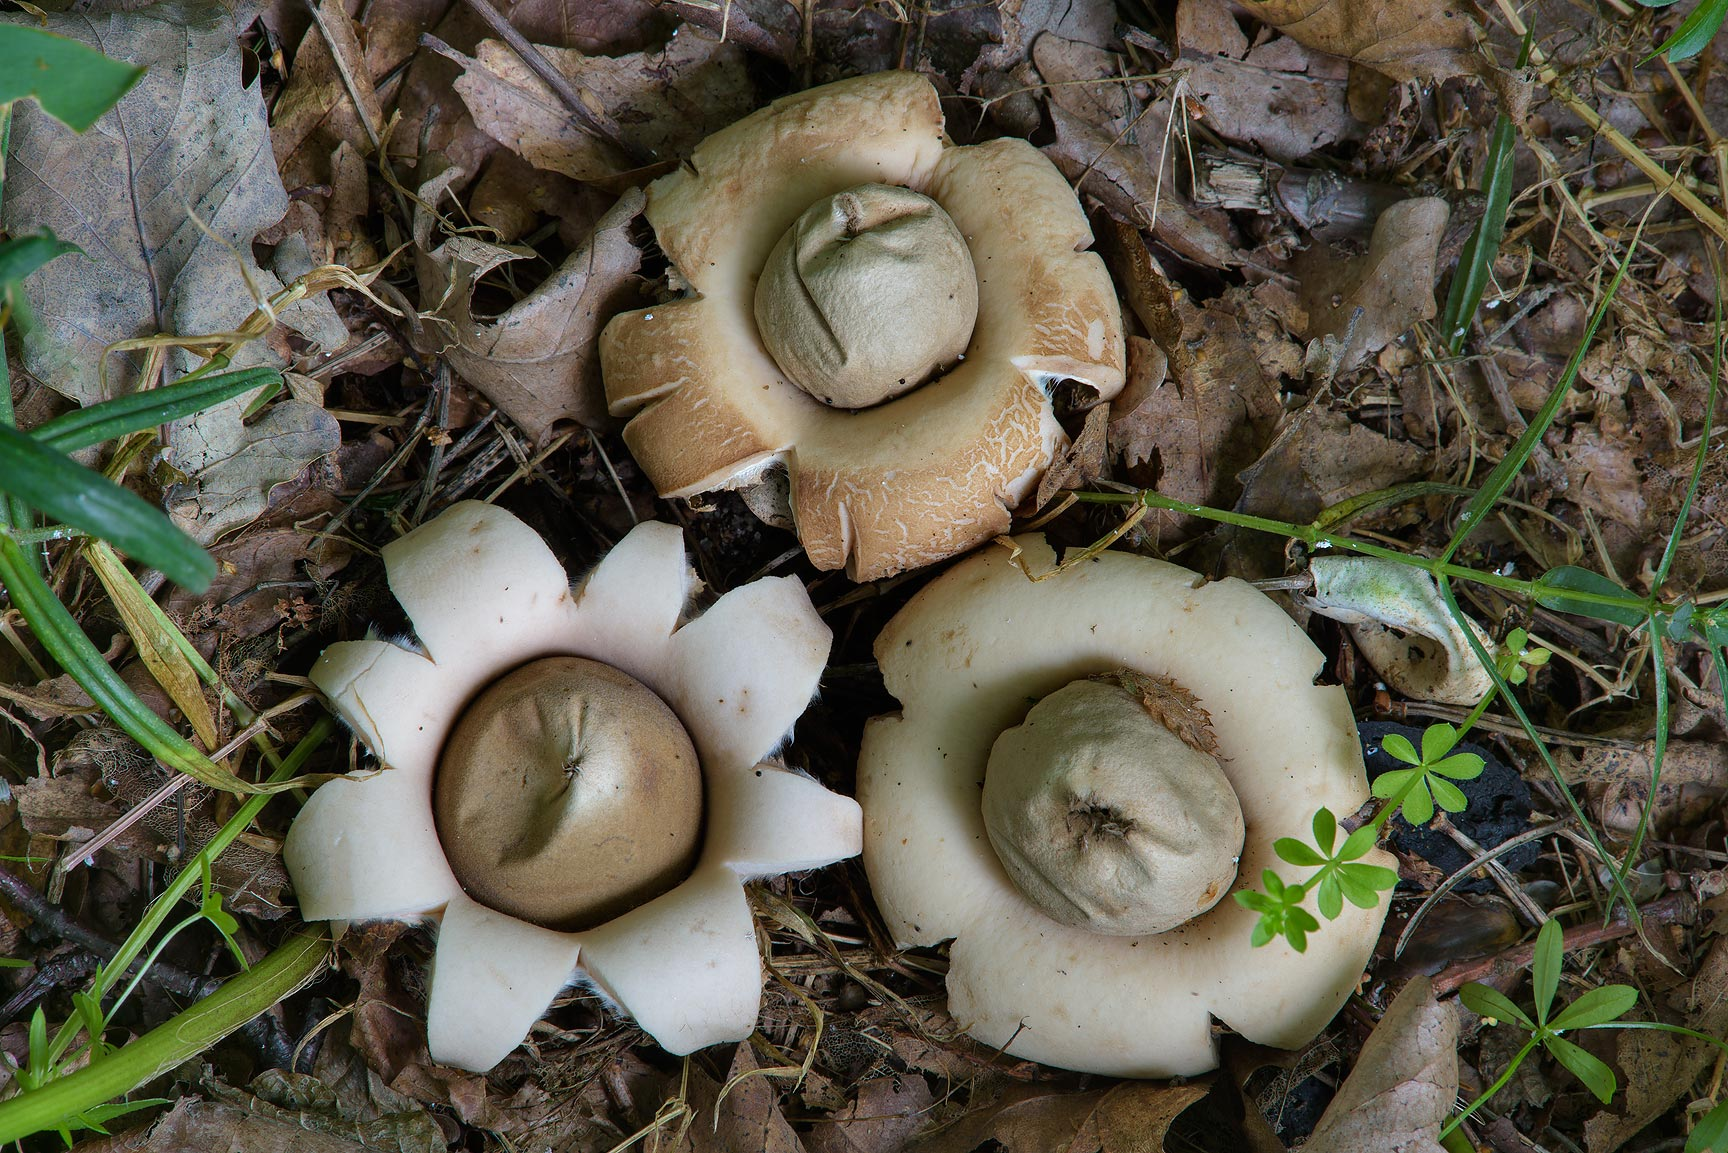 Fruit bodies of fringed earthstar mushrooms...miles west from St.Petersburg. Russia